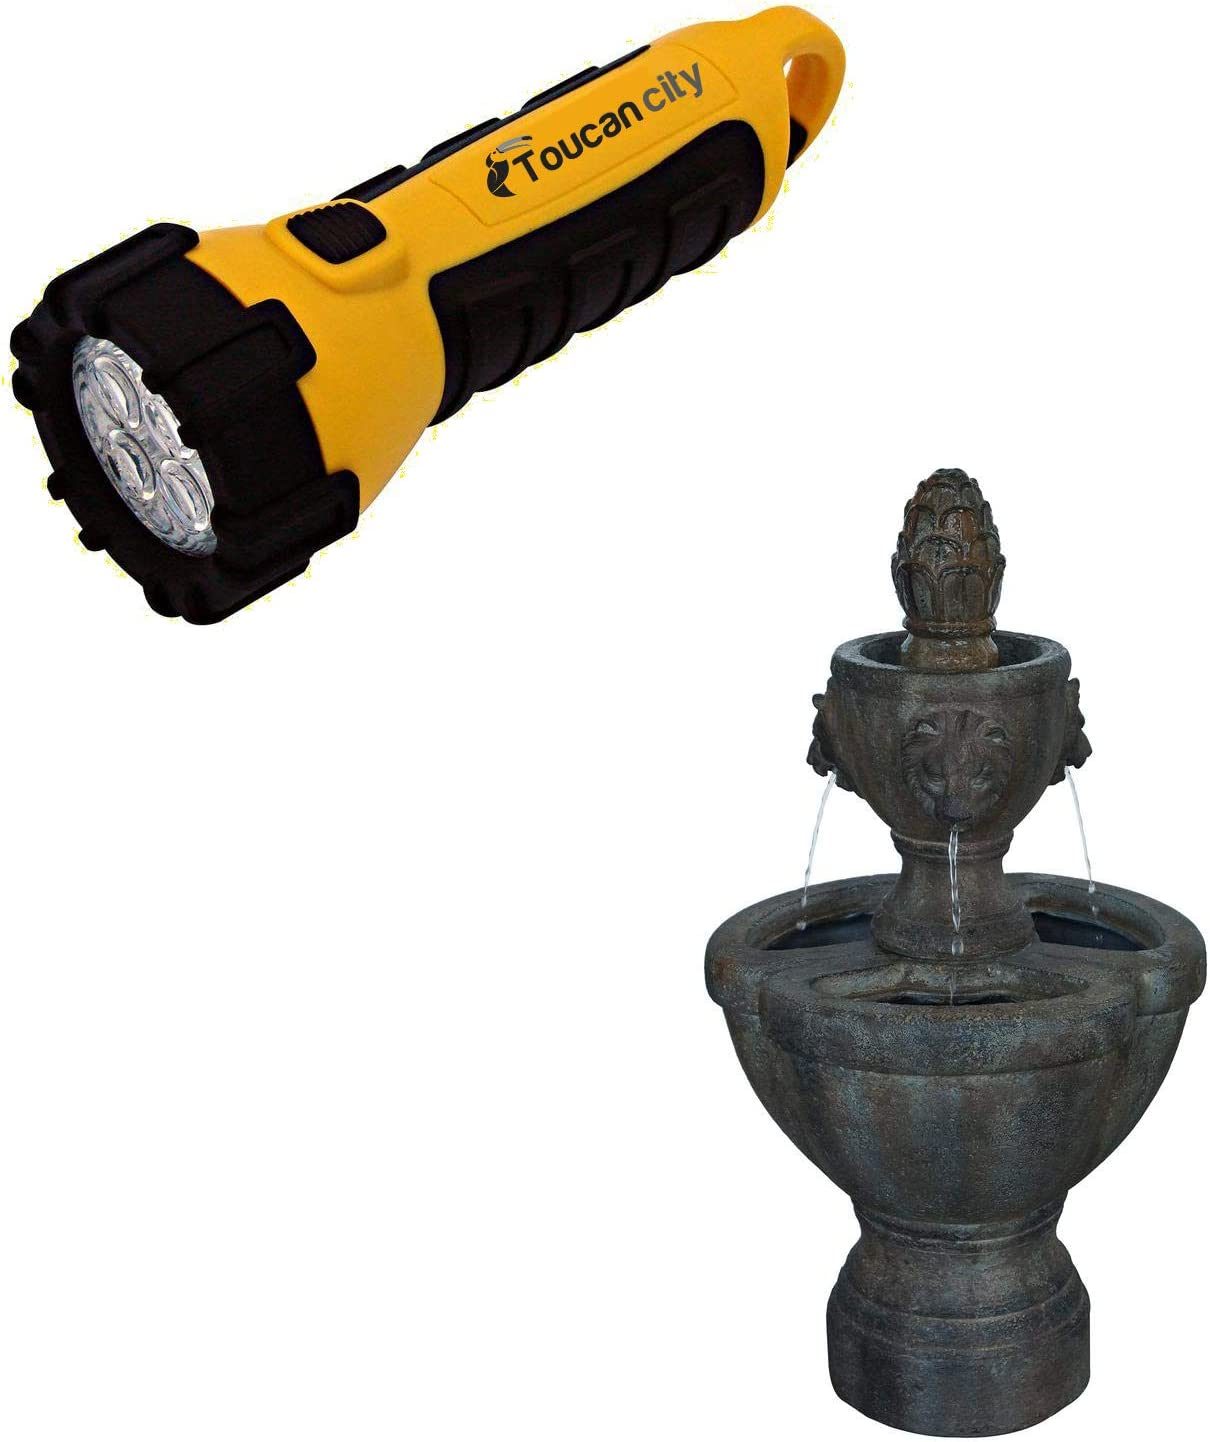 Toucan City LED Flashlight and Pure Garden Tiered Outdoor Lion Head Water Fountain HW155016